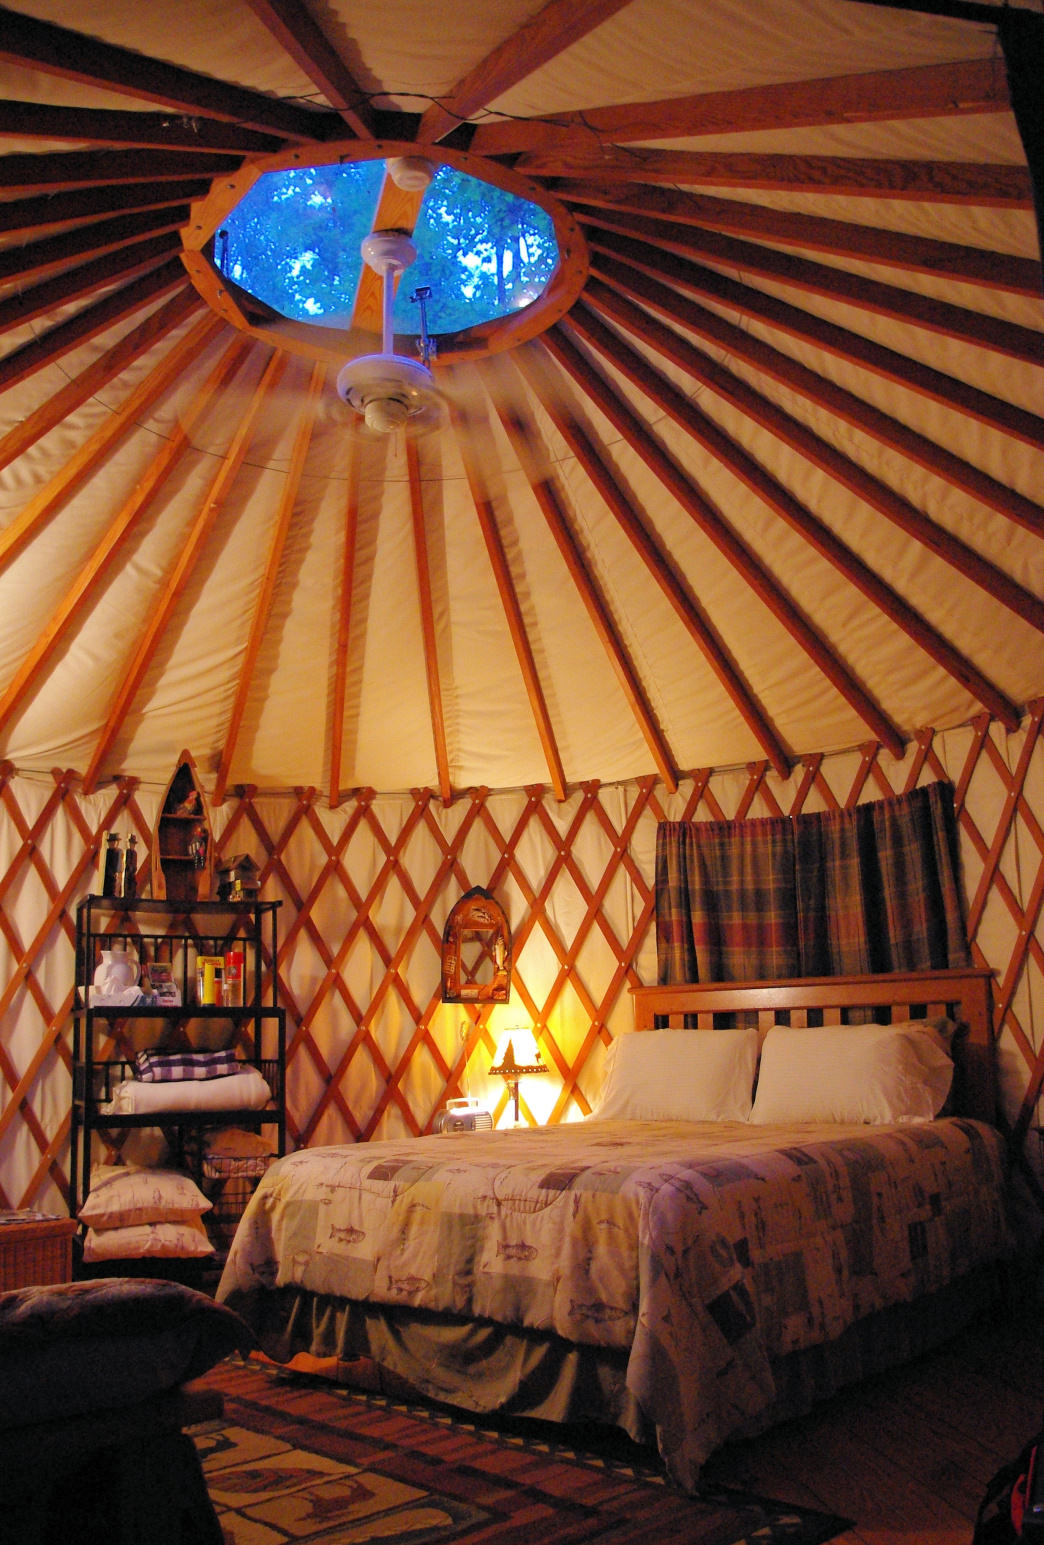 Luxurious simplicity inside the Yurt.